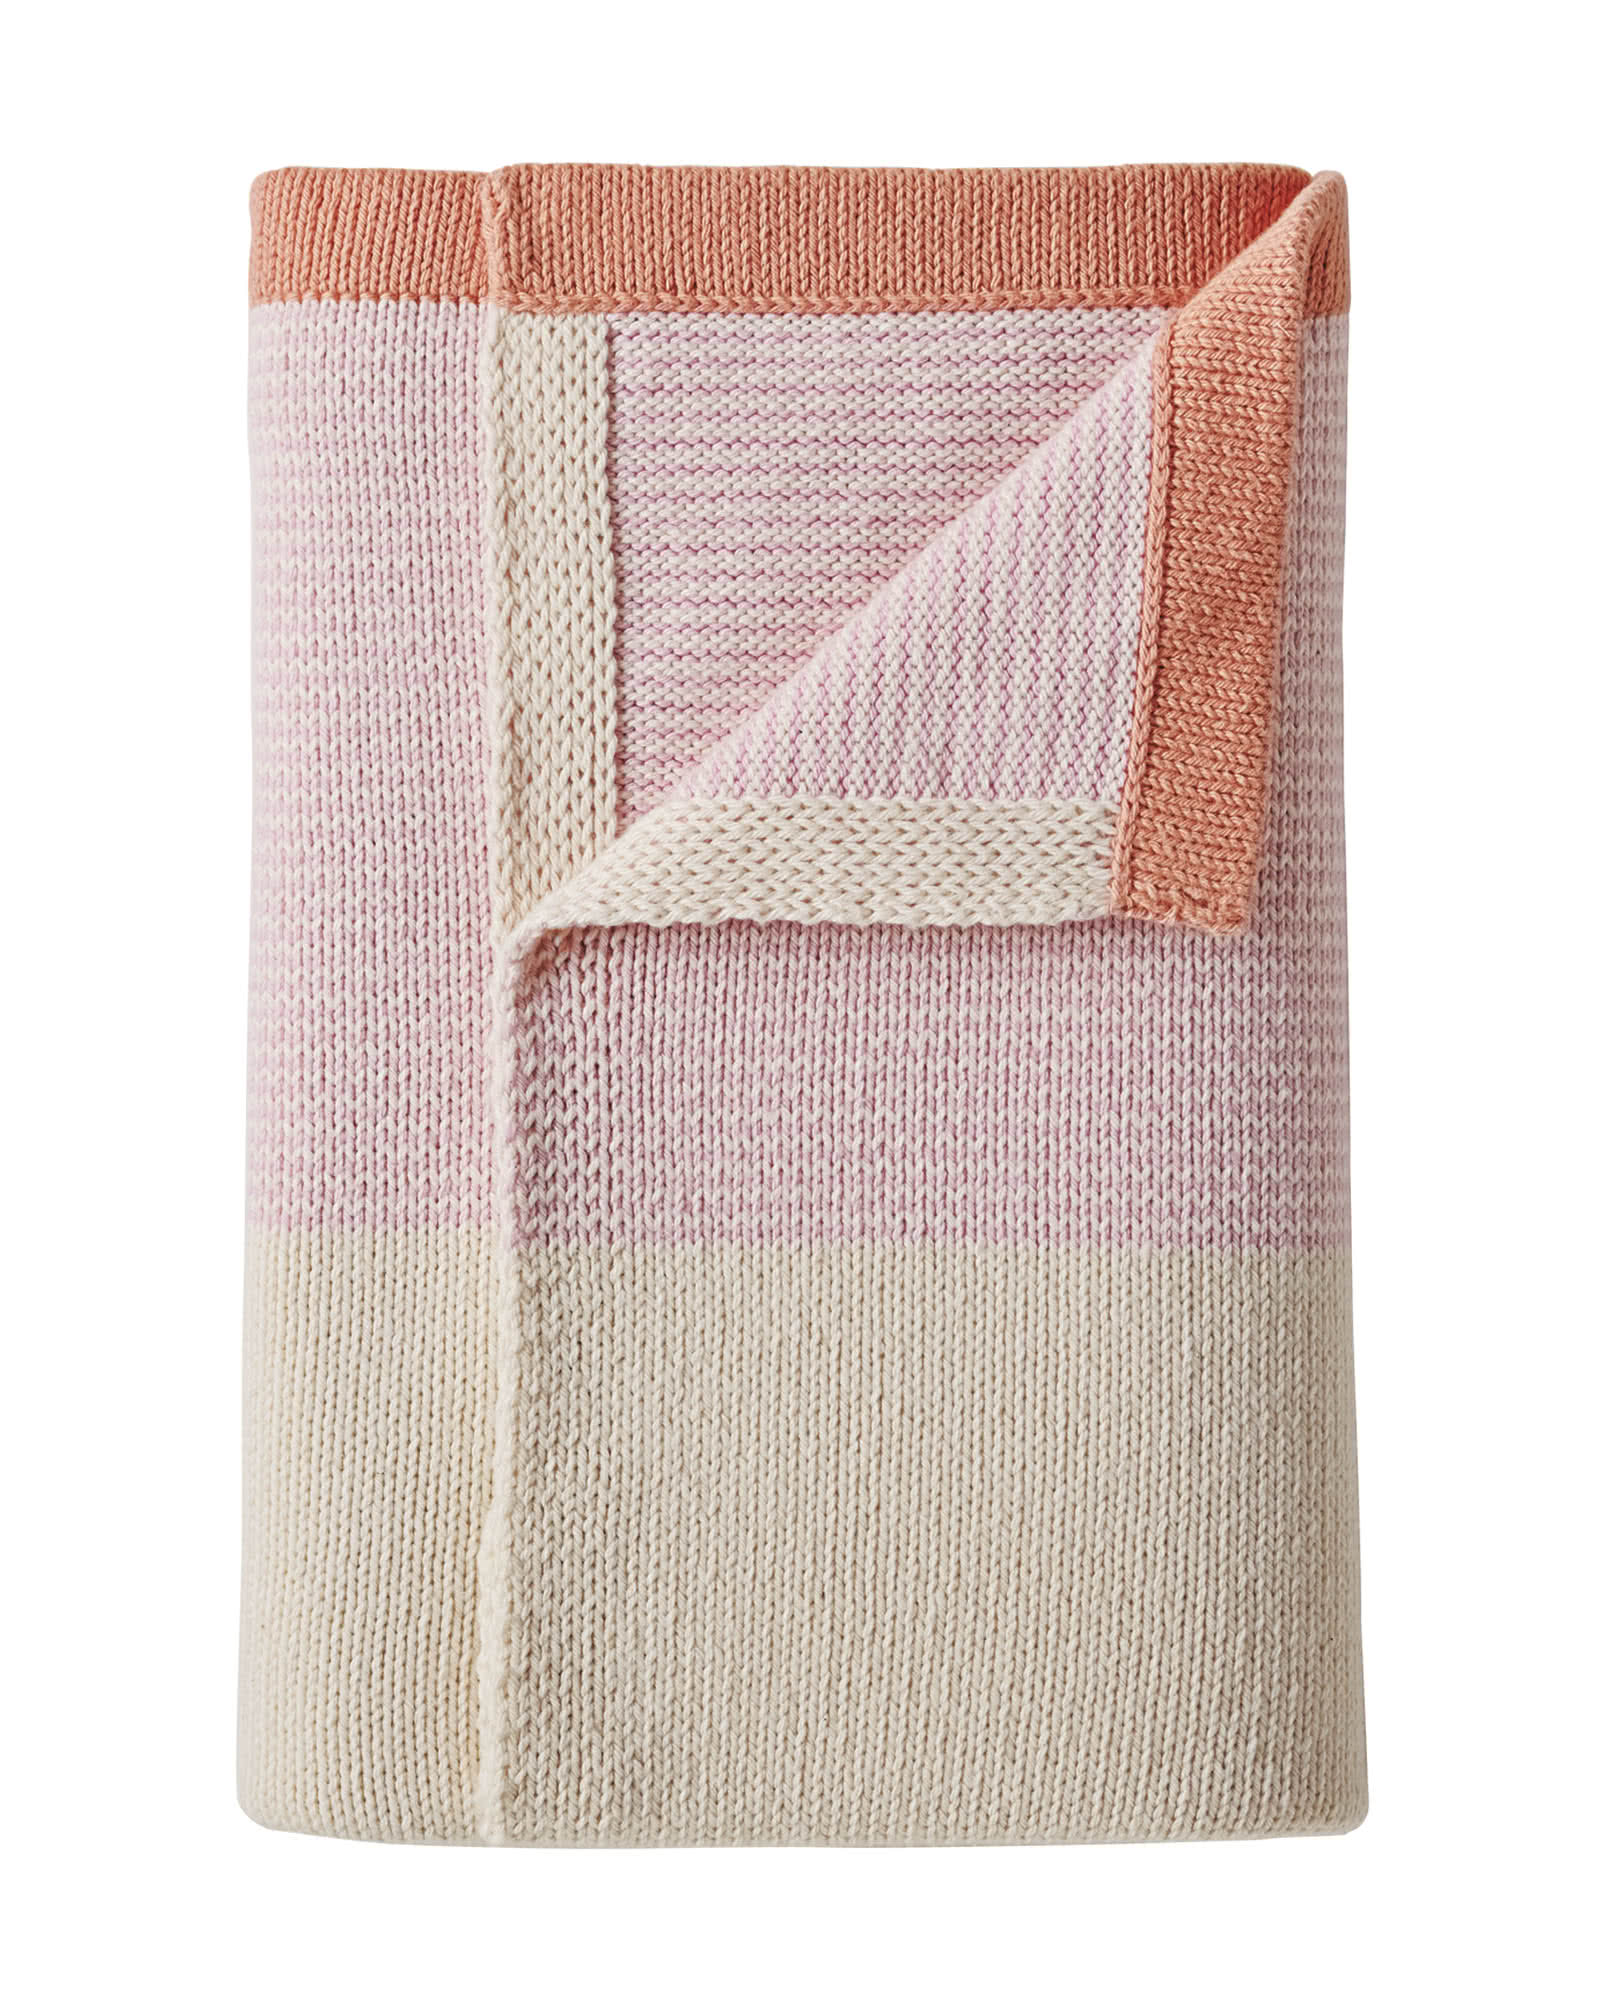 Sweater Knit Baby Blanket